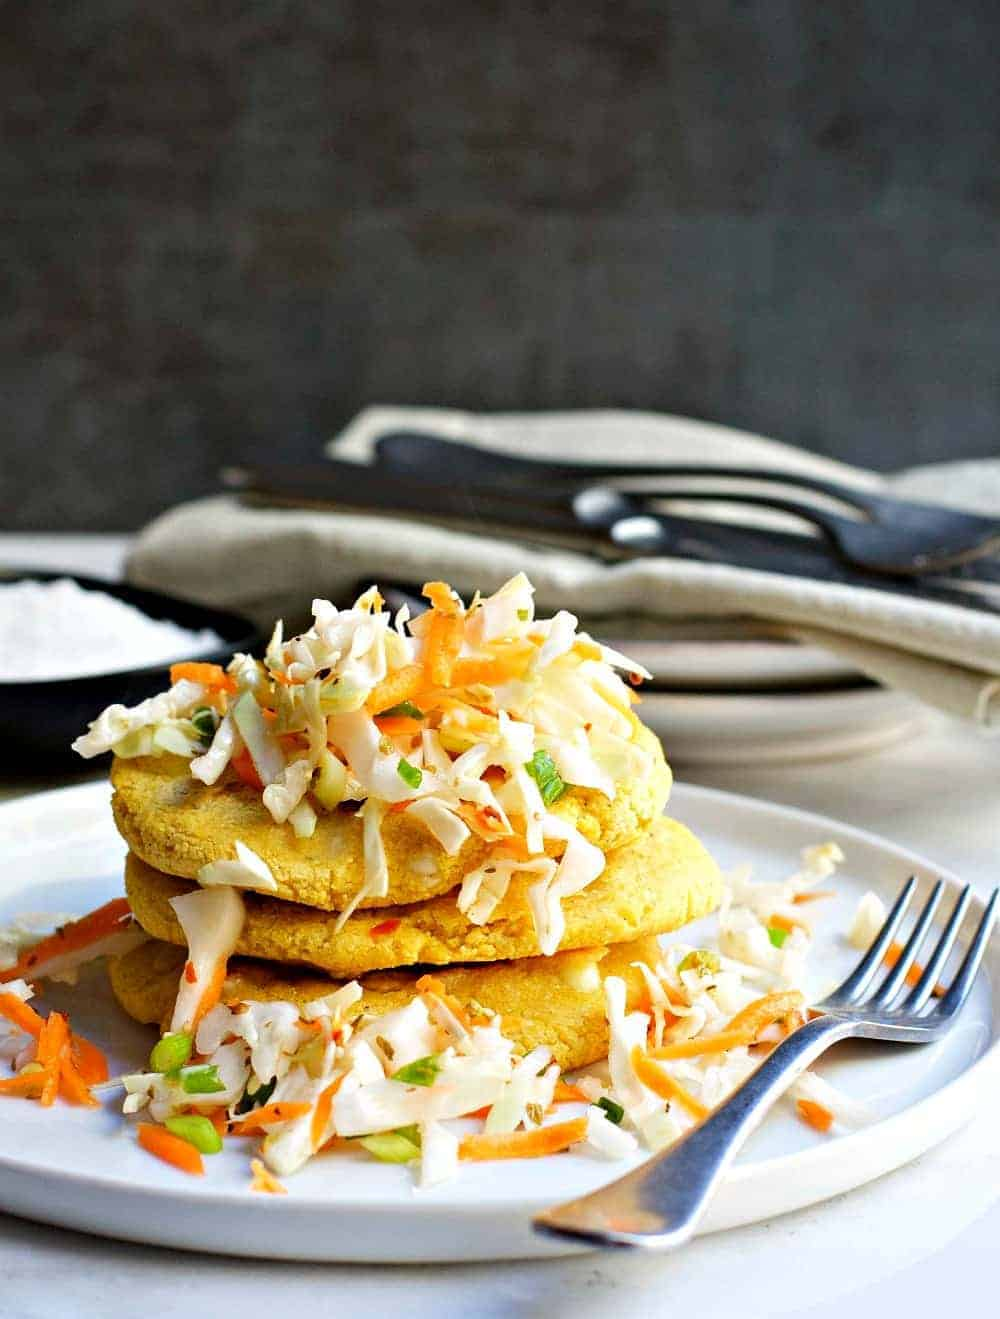 Delicious Pupusas stacked high and smothered in Curtido (spicy slaw).